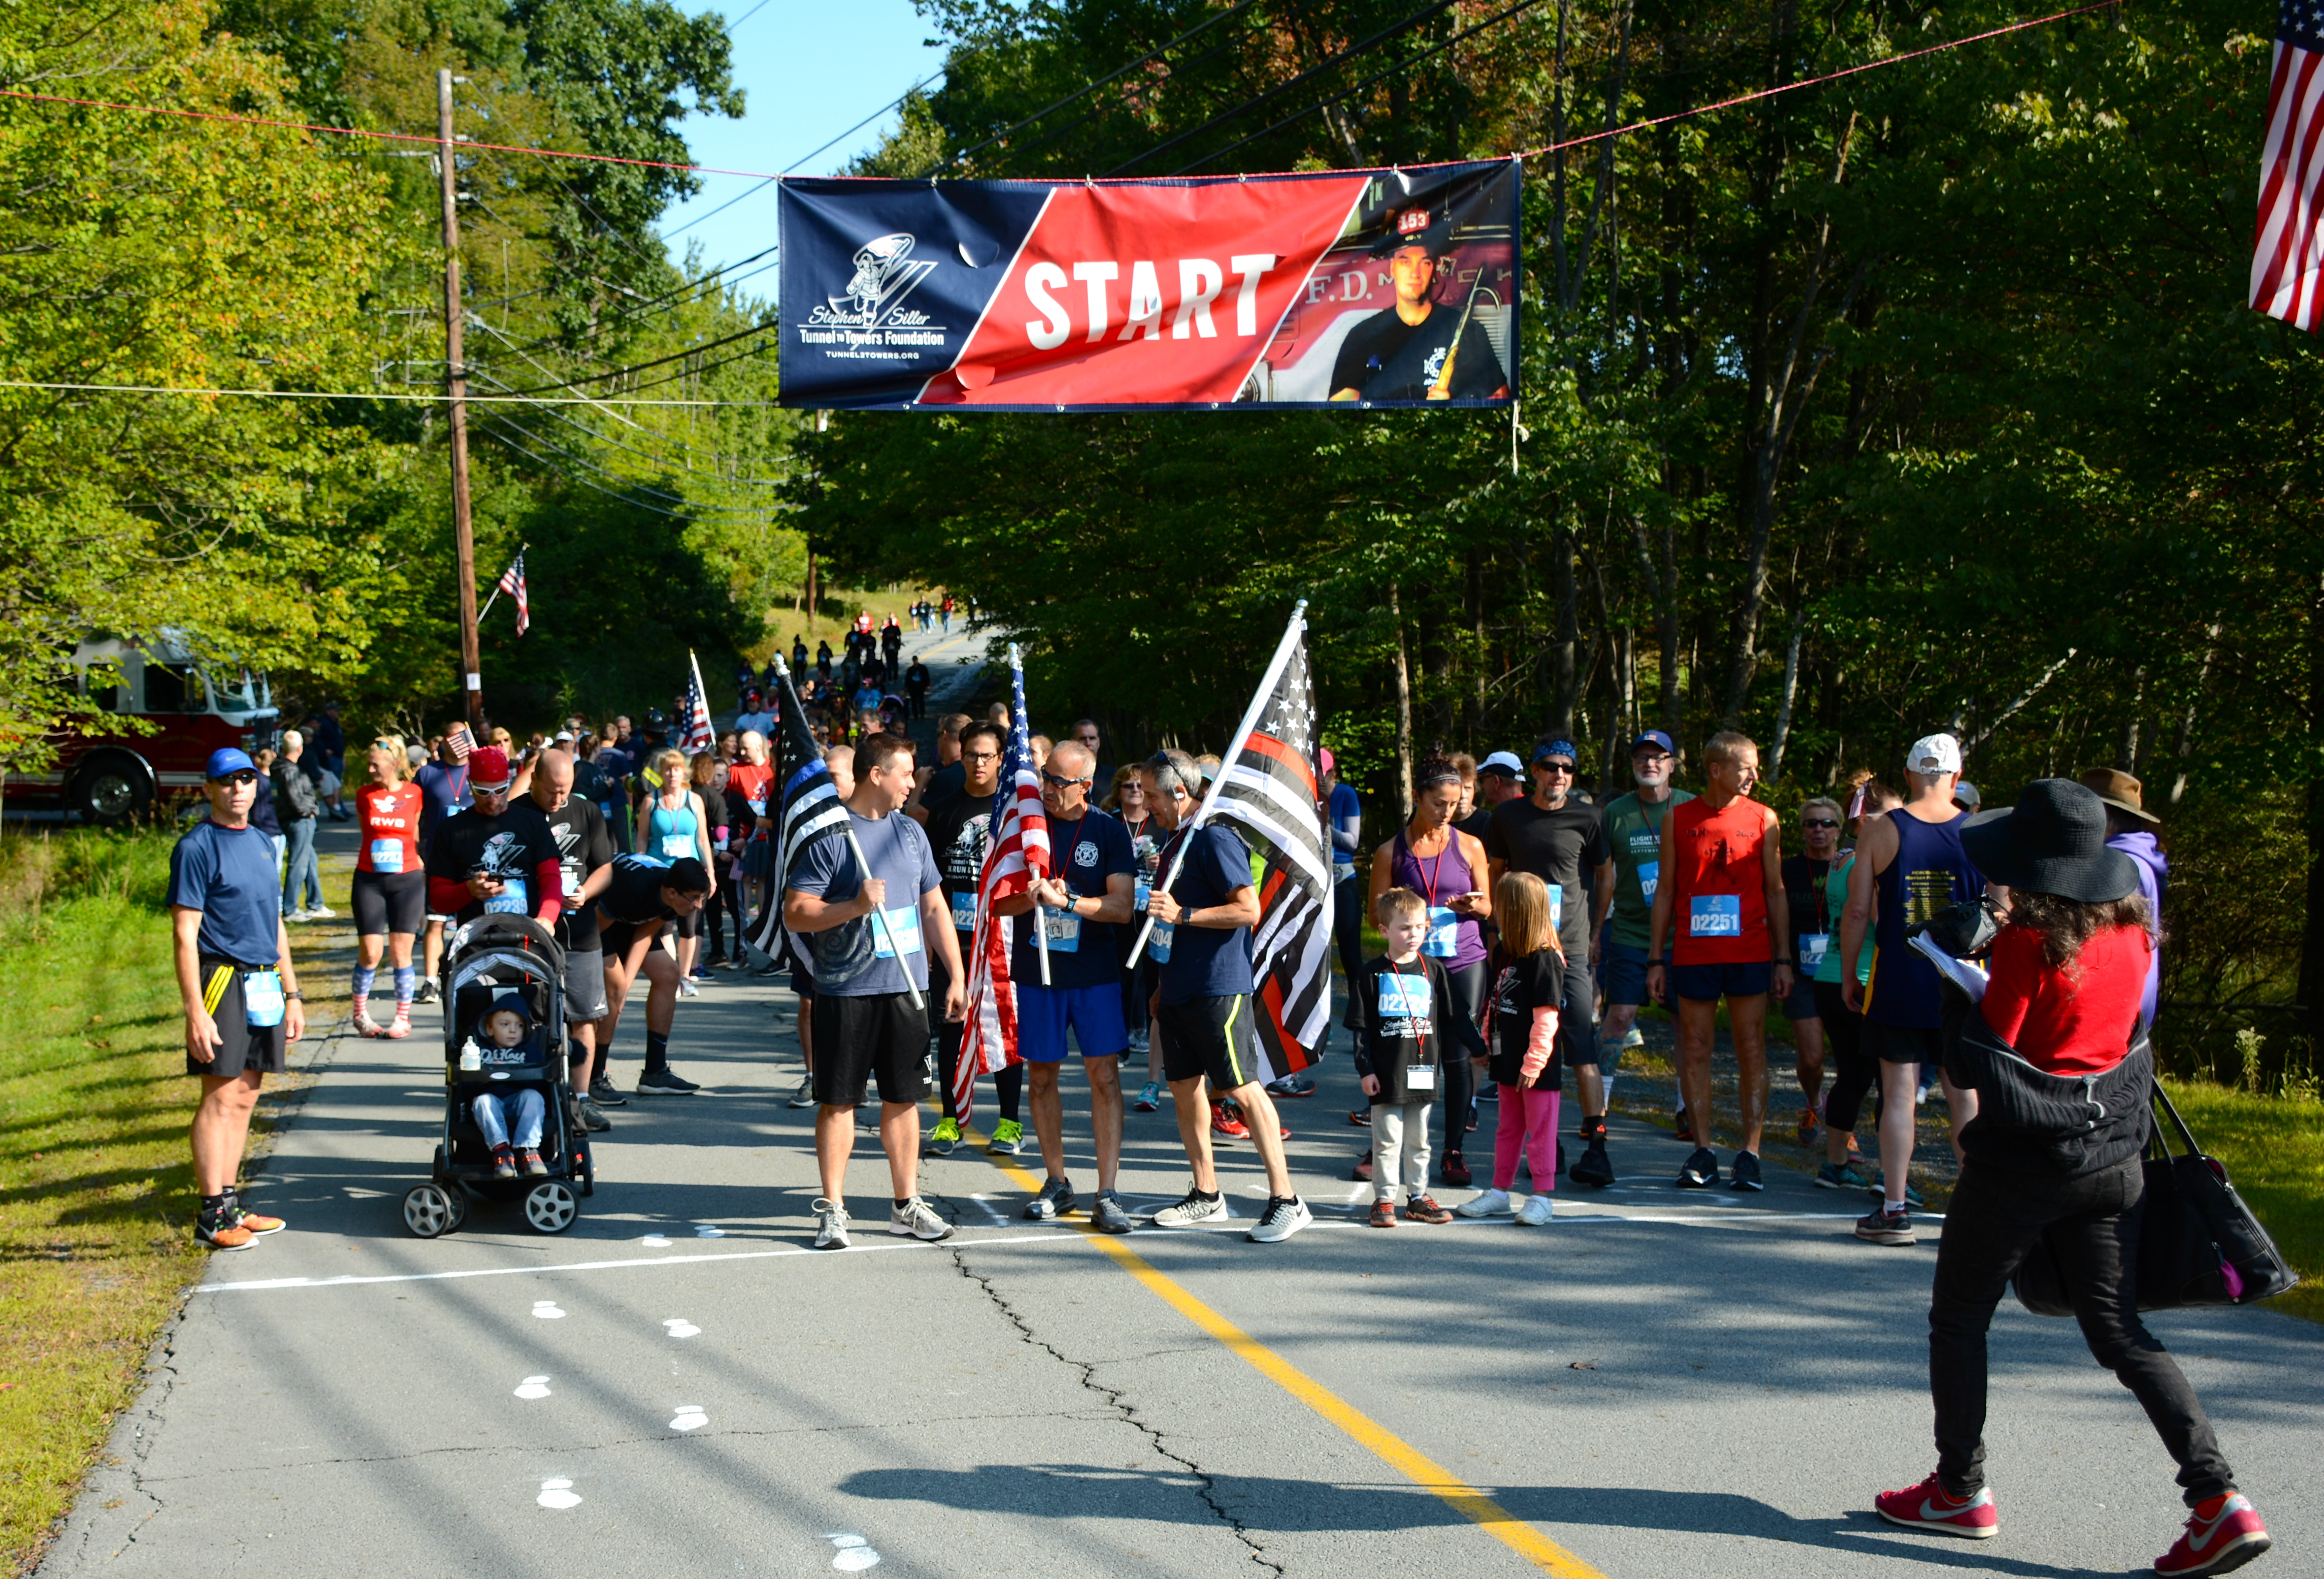 T2T 5K ROAD CLOSURES ON 9/8/2019